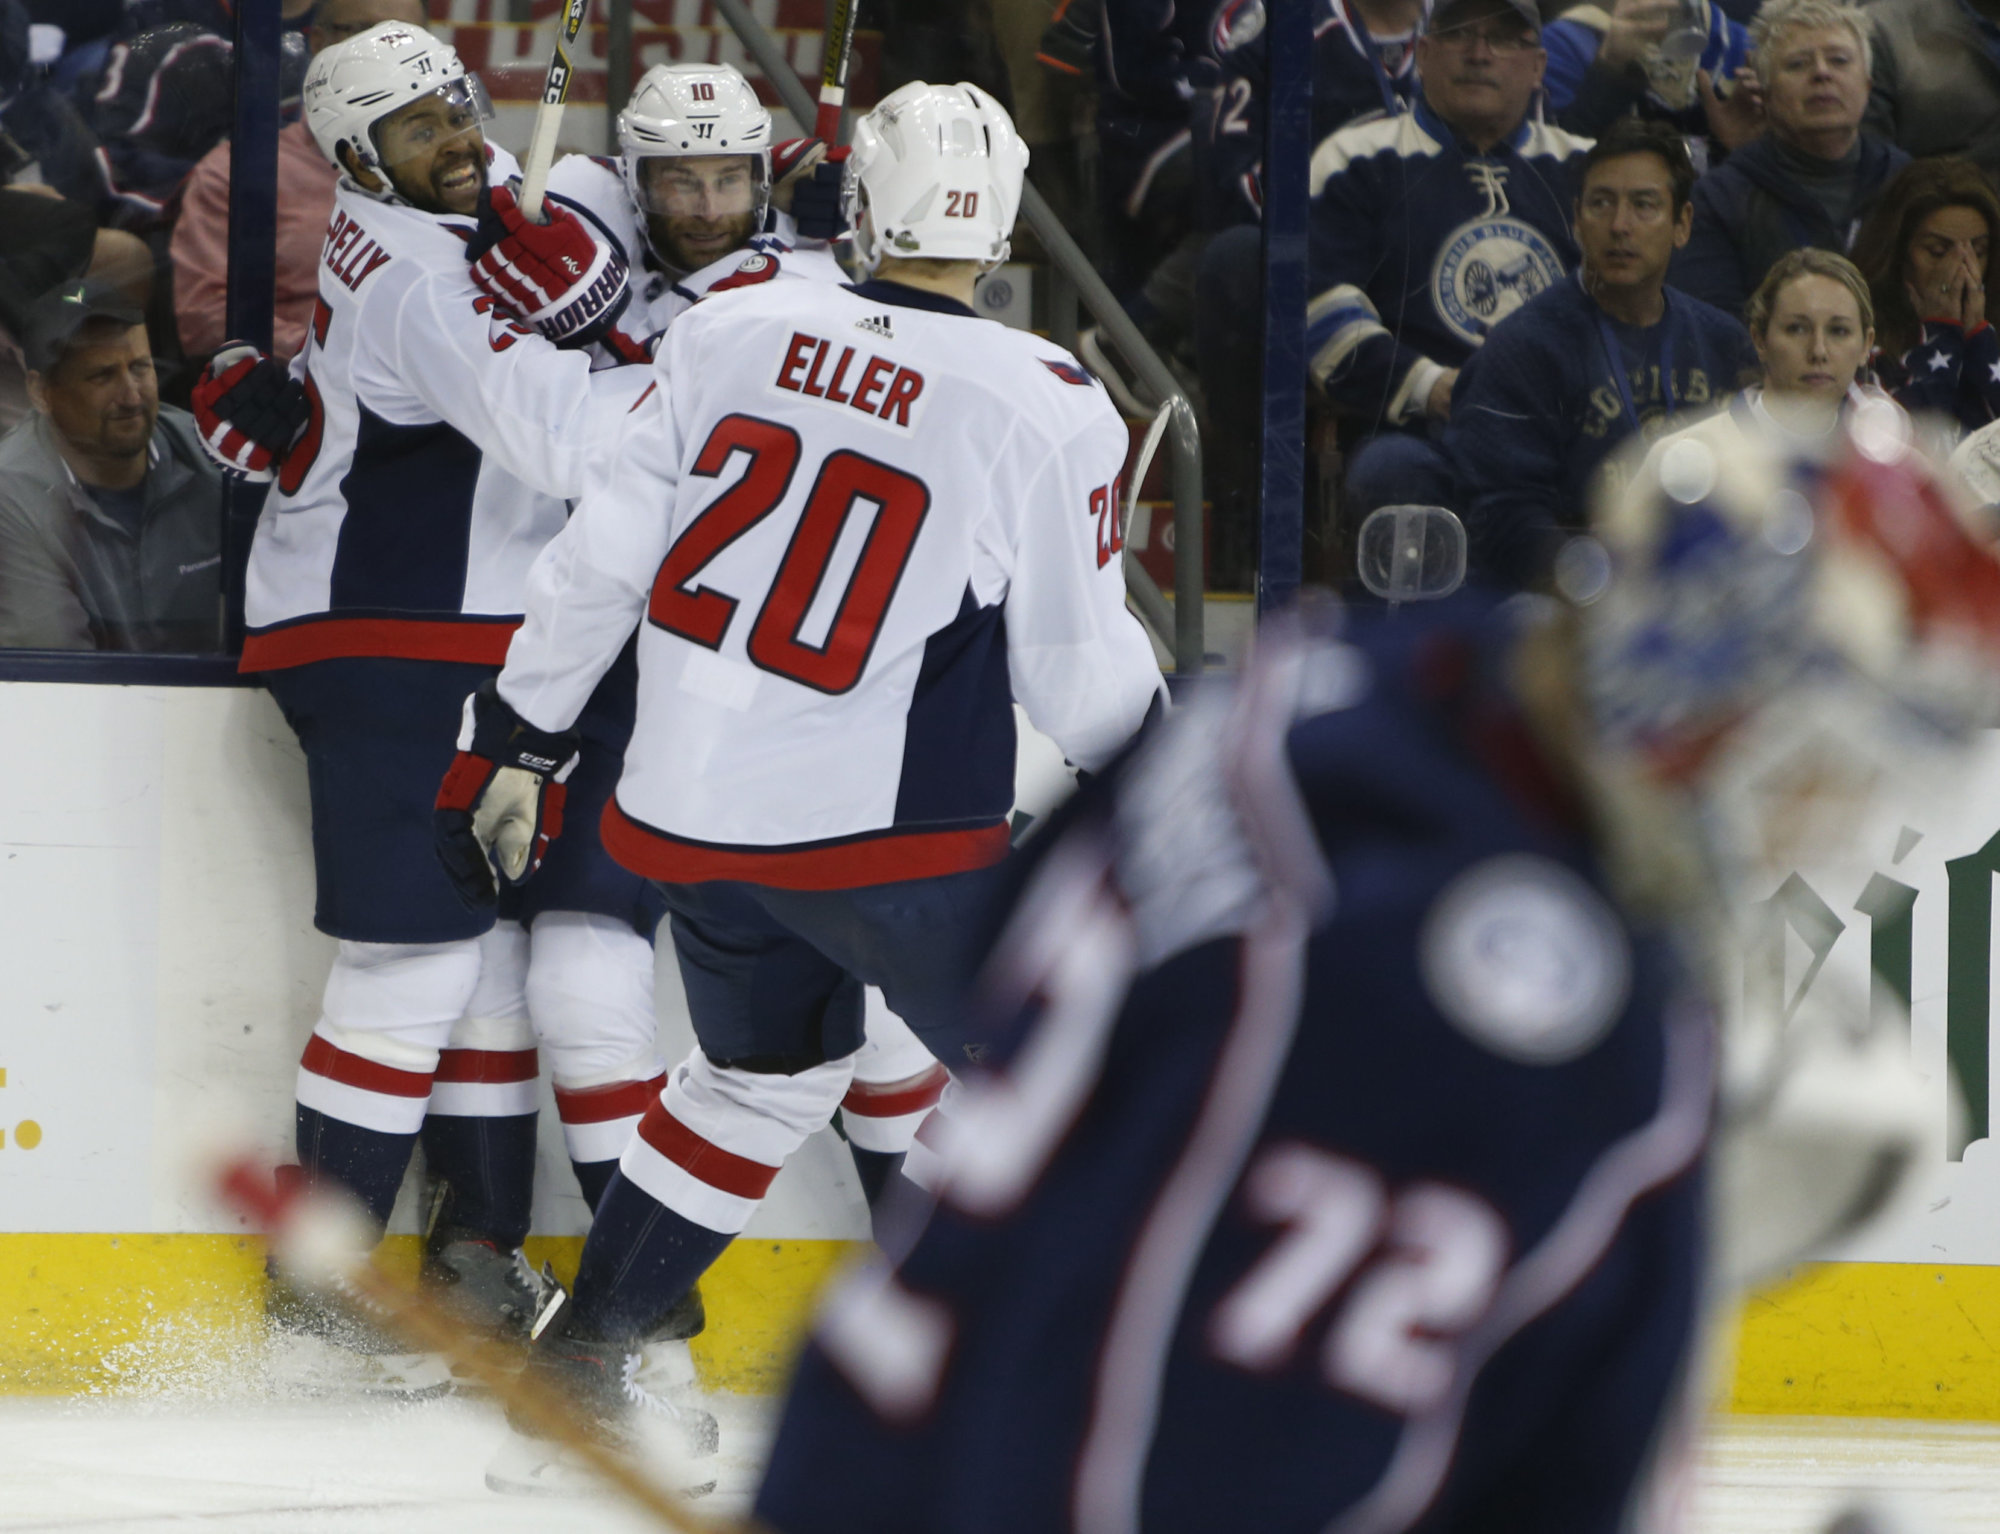 Washington Capitals' Devante Smith-Pelly, left to right, Brett Connolly, and Lars Eller, of Denmark, celebrate their goal against the Columbus Blue Jackets during the third period of Game 6 of an NHL first-round hockey playoff series Monday, April 23, 2018, in Columbus, Ohio. The Capitals defeated the Blue Jackets 6-3. (AP Photo/Jay LaPrete)